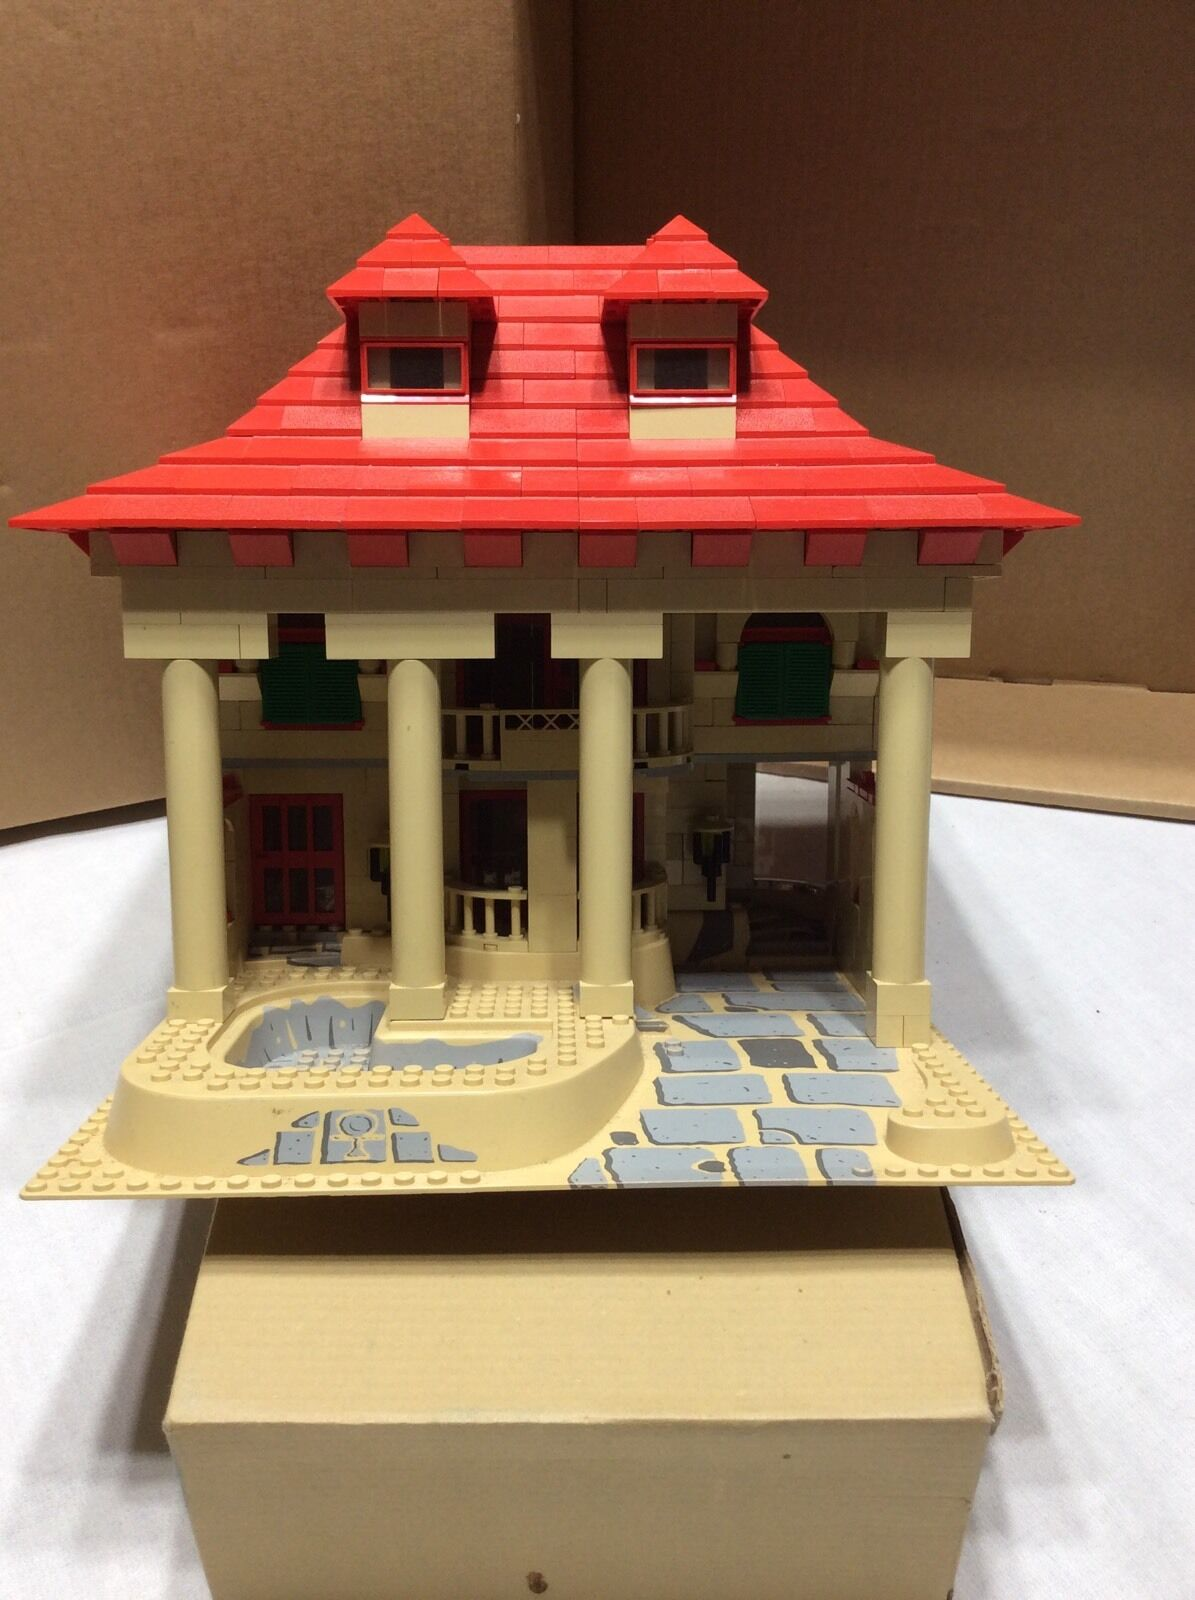 Lego custom made MOC Large Tan House pool rosso roof 4lb Many pieces used Lego